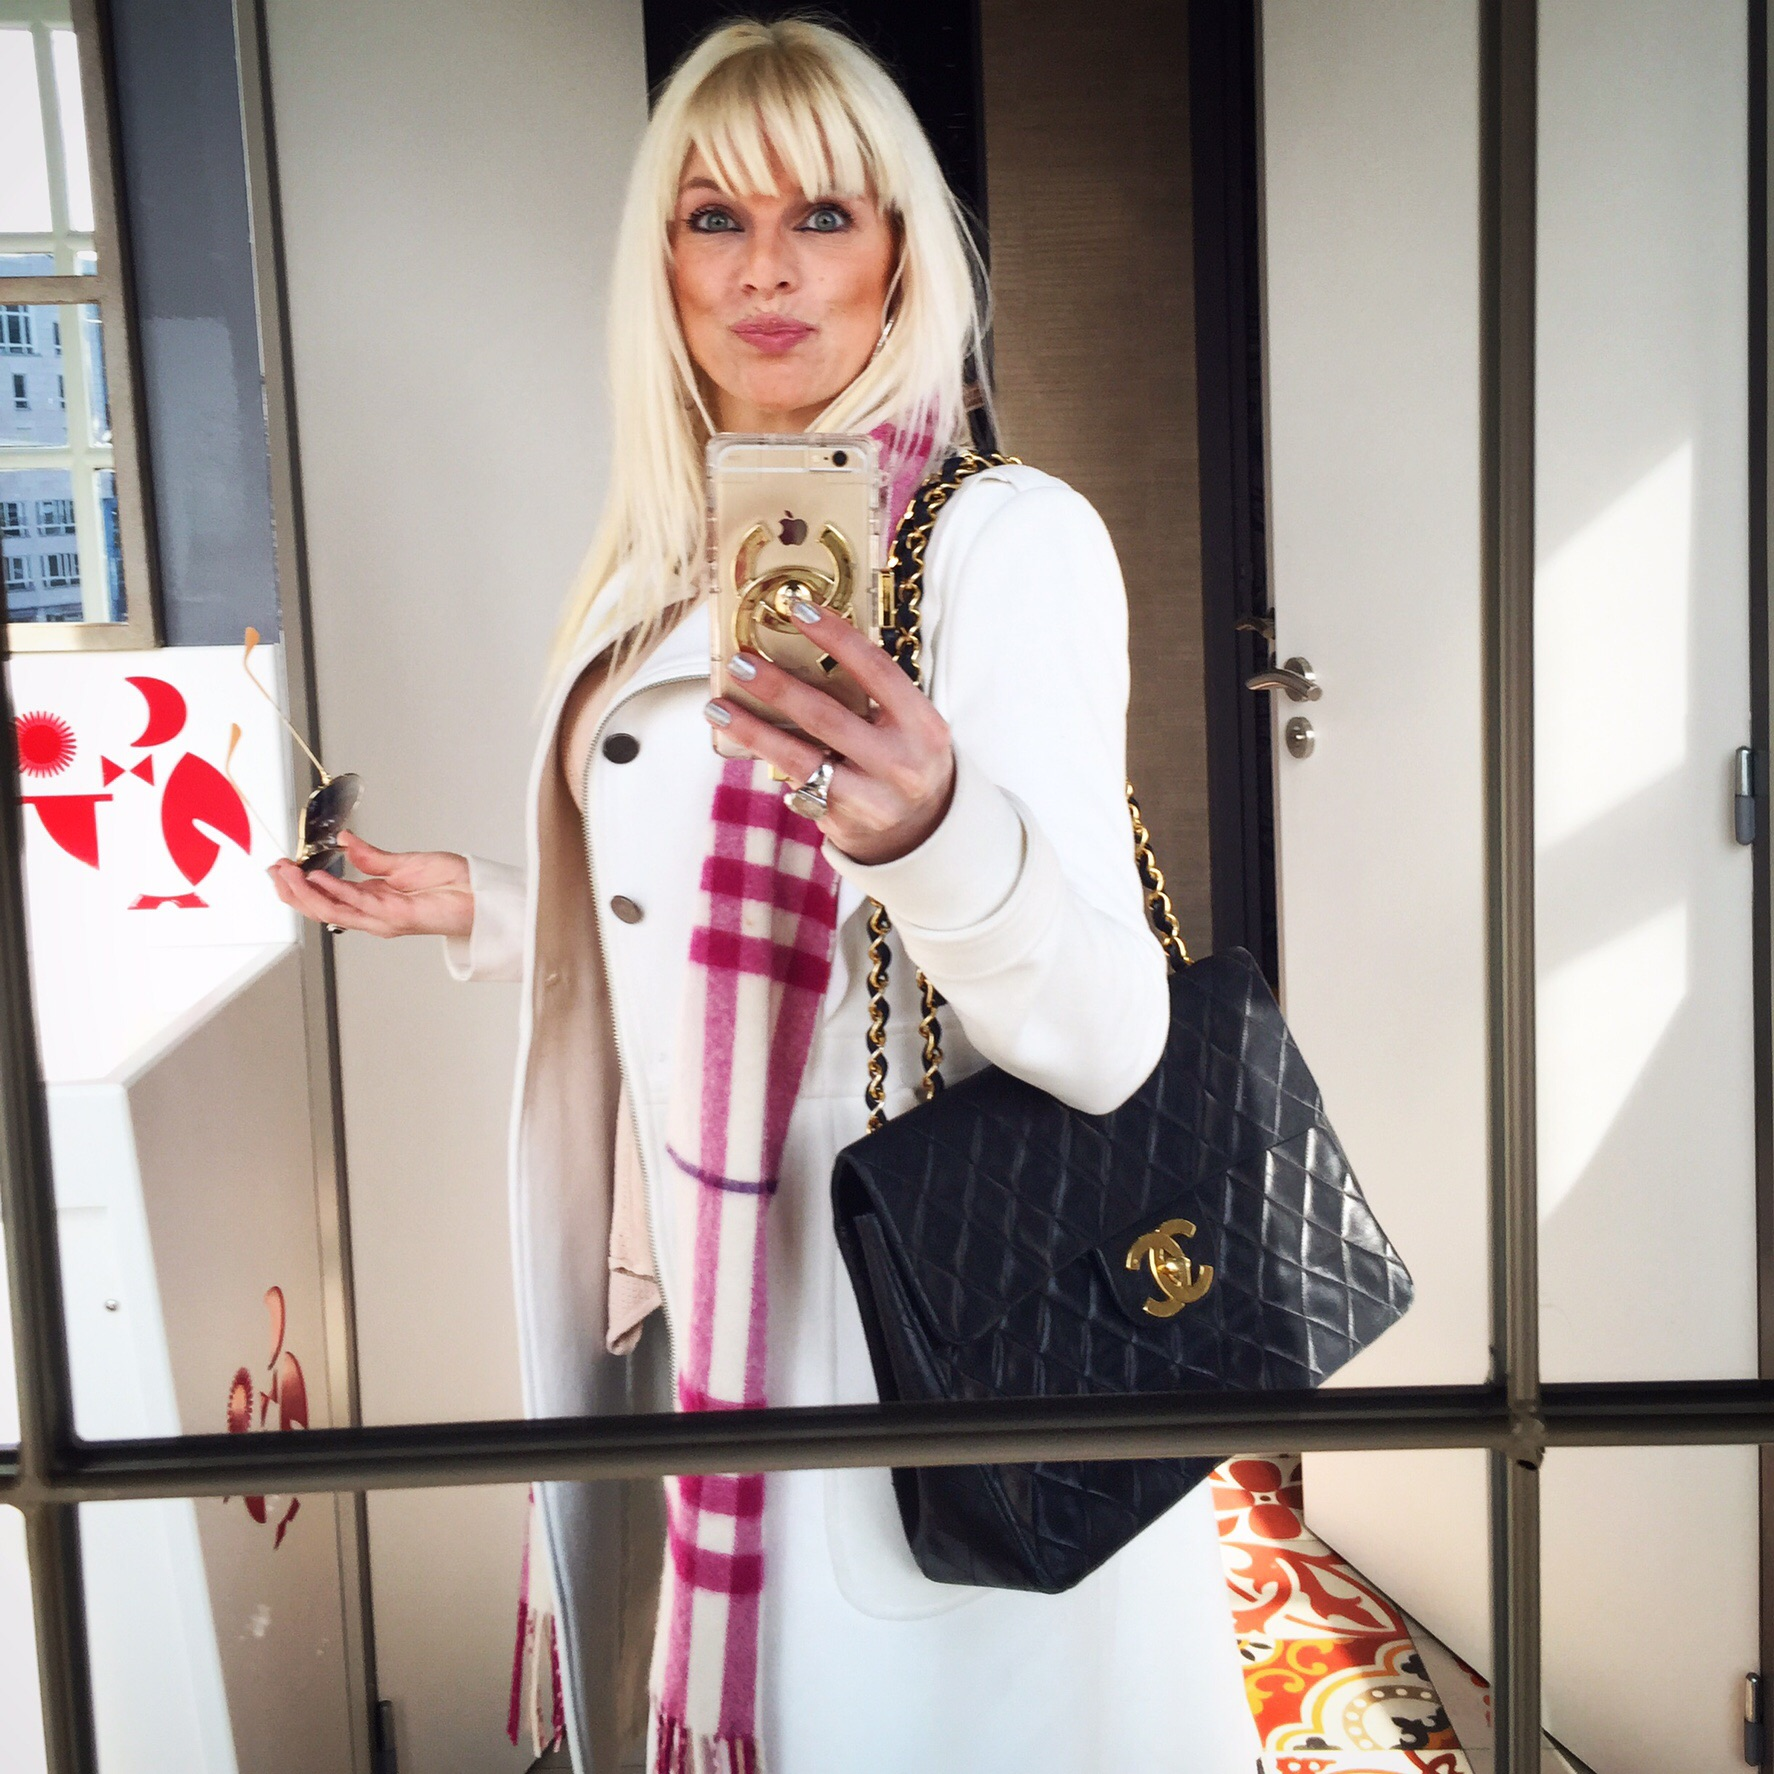 08bf04f1e7c1 ... my very first Chanel handbag. Im in love with it :) ( I had to take a  picture with my Chanel at 31 rue Cambon lol I know its cheesy :P )